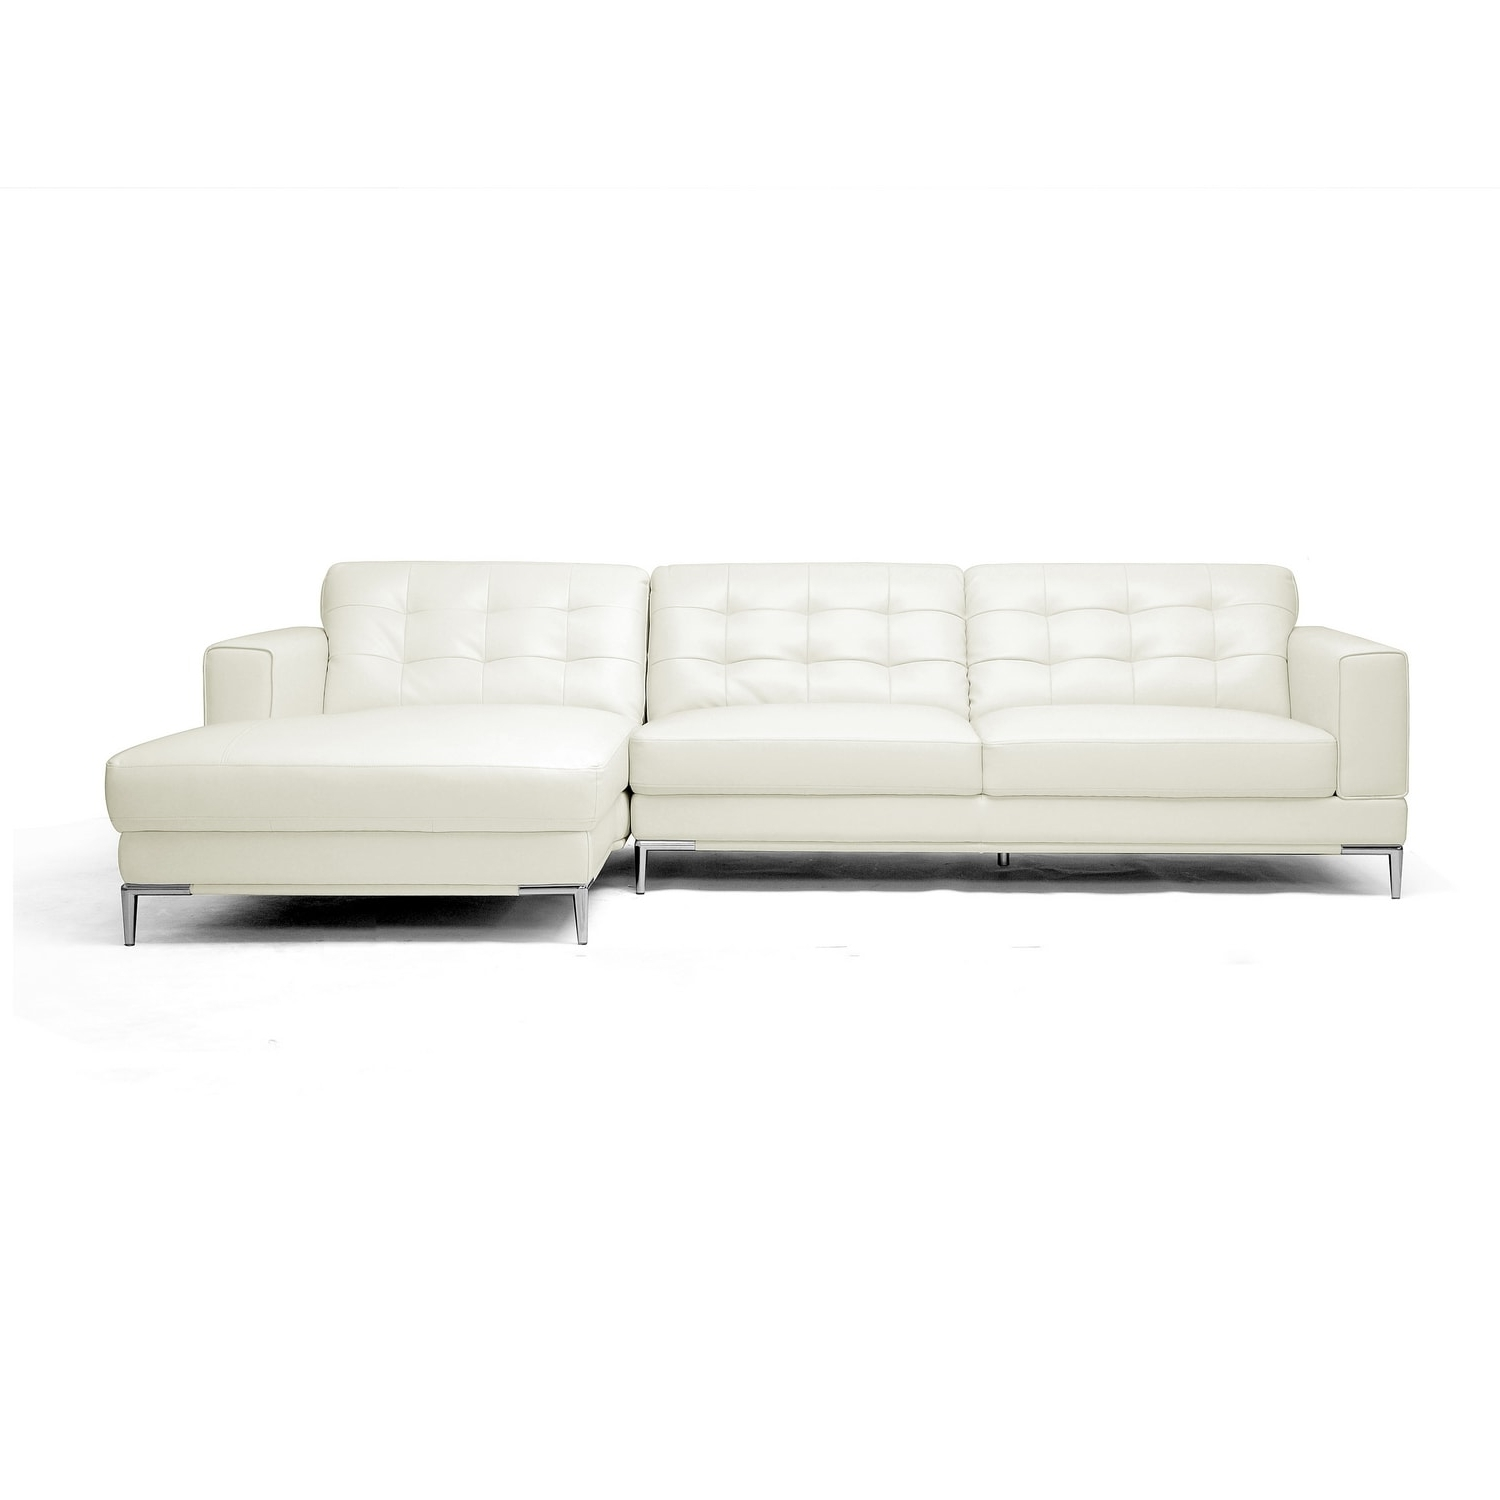 Overstock Sectional Sofas Inside Popular Babbitt Sleek Ivory Leather Modern Sectional Sofa – Free Shipping (View 11 of 20)